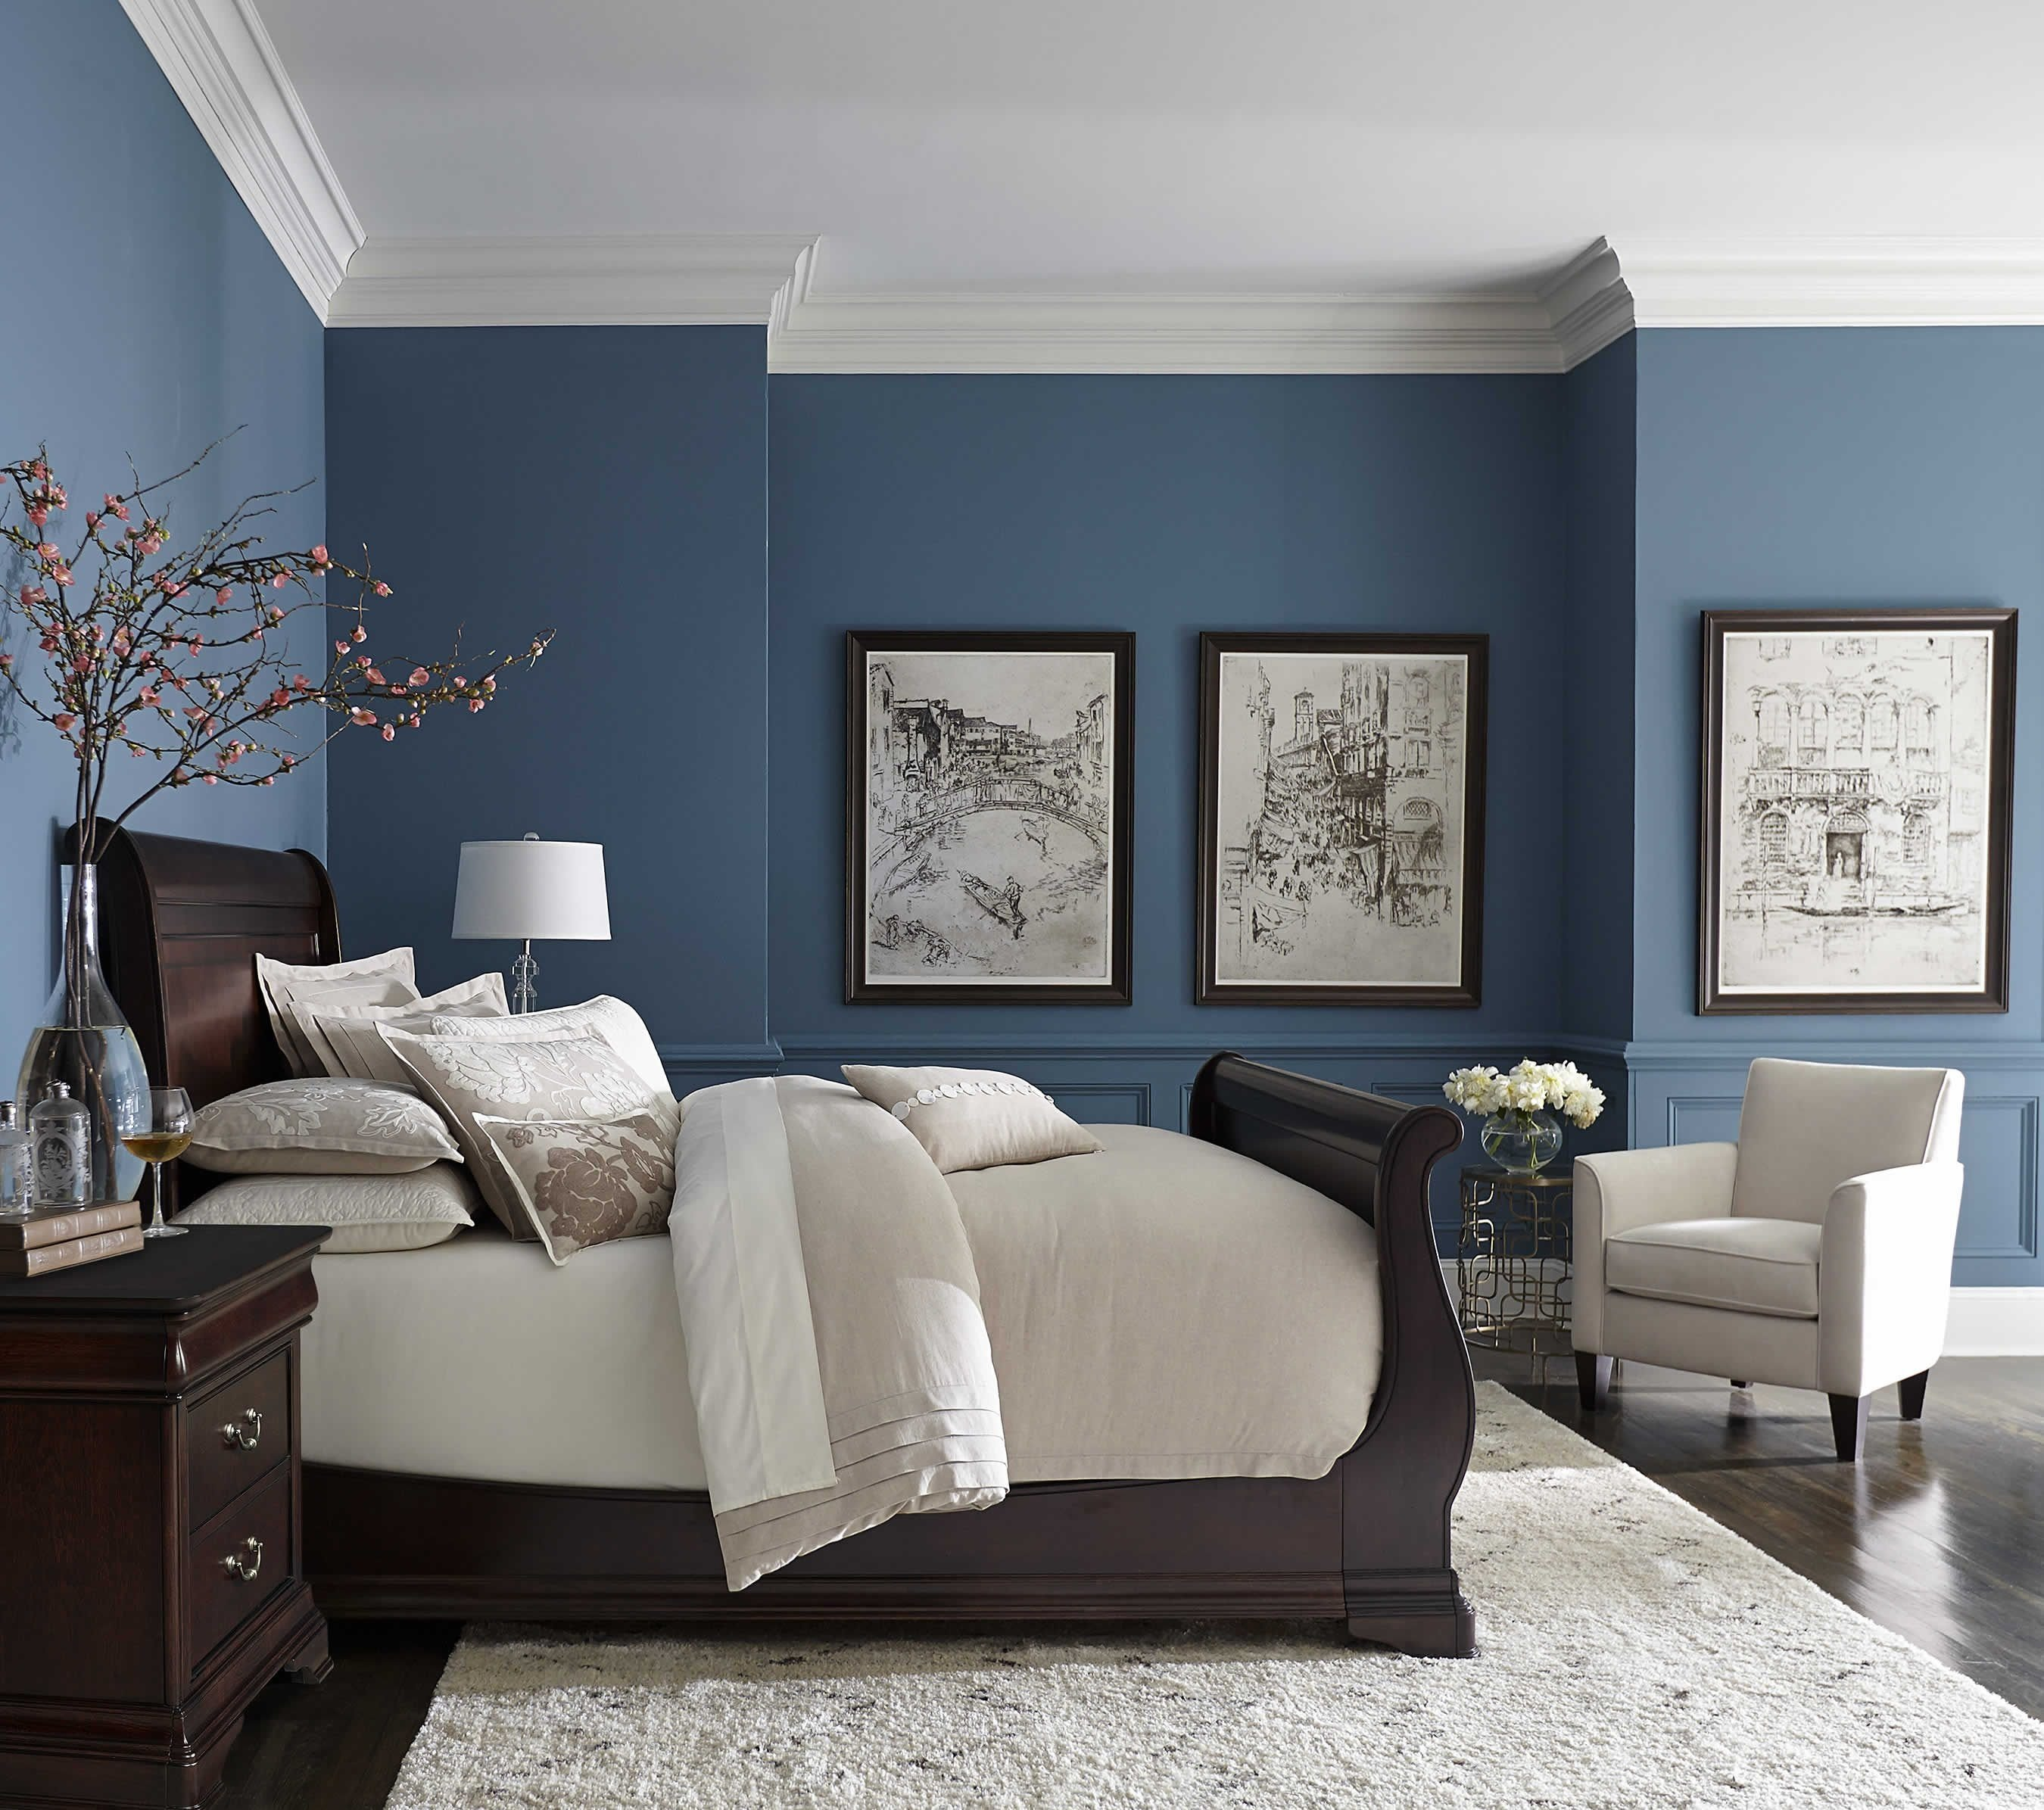 10 Fantastic Brown And Blue Bedroom Ideas pretty blue color with white crown molding home pinterest blue 2021